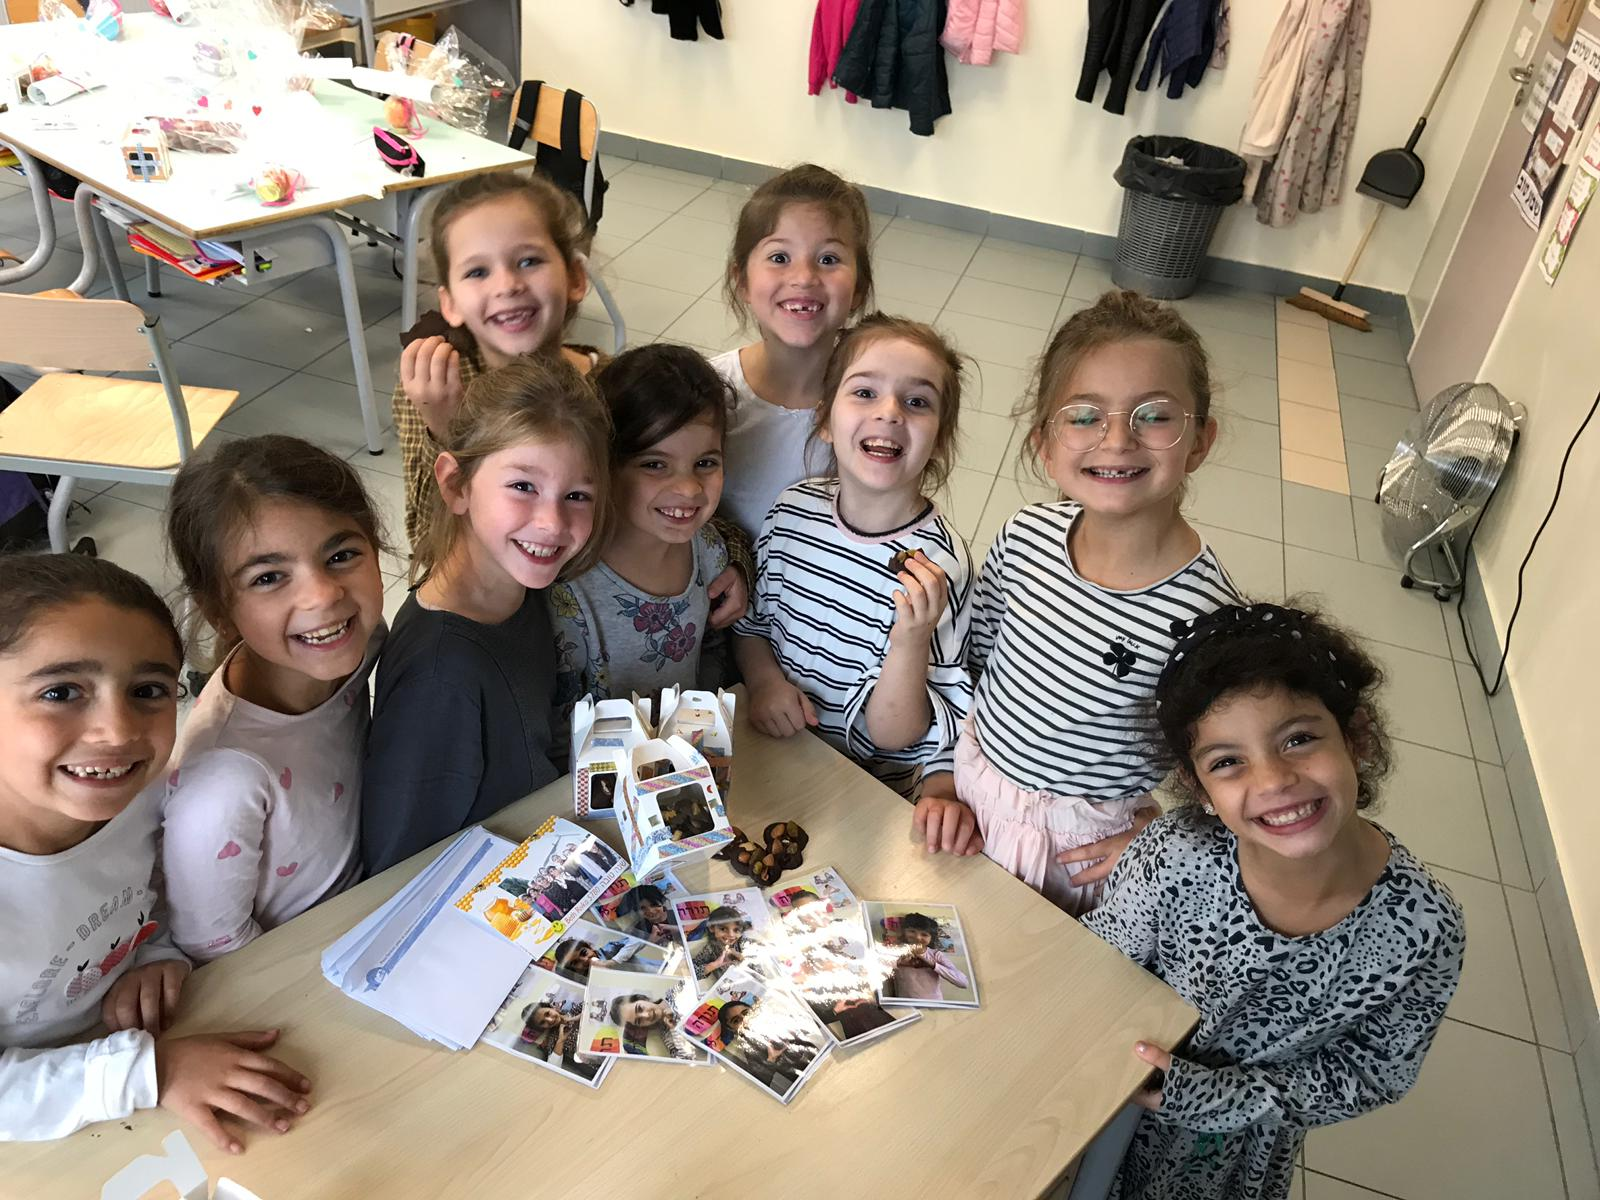 WhatsApp Image 2019-09-27 at 15.27.15